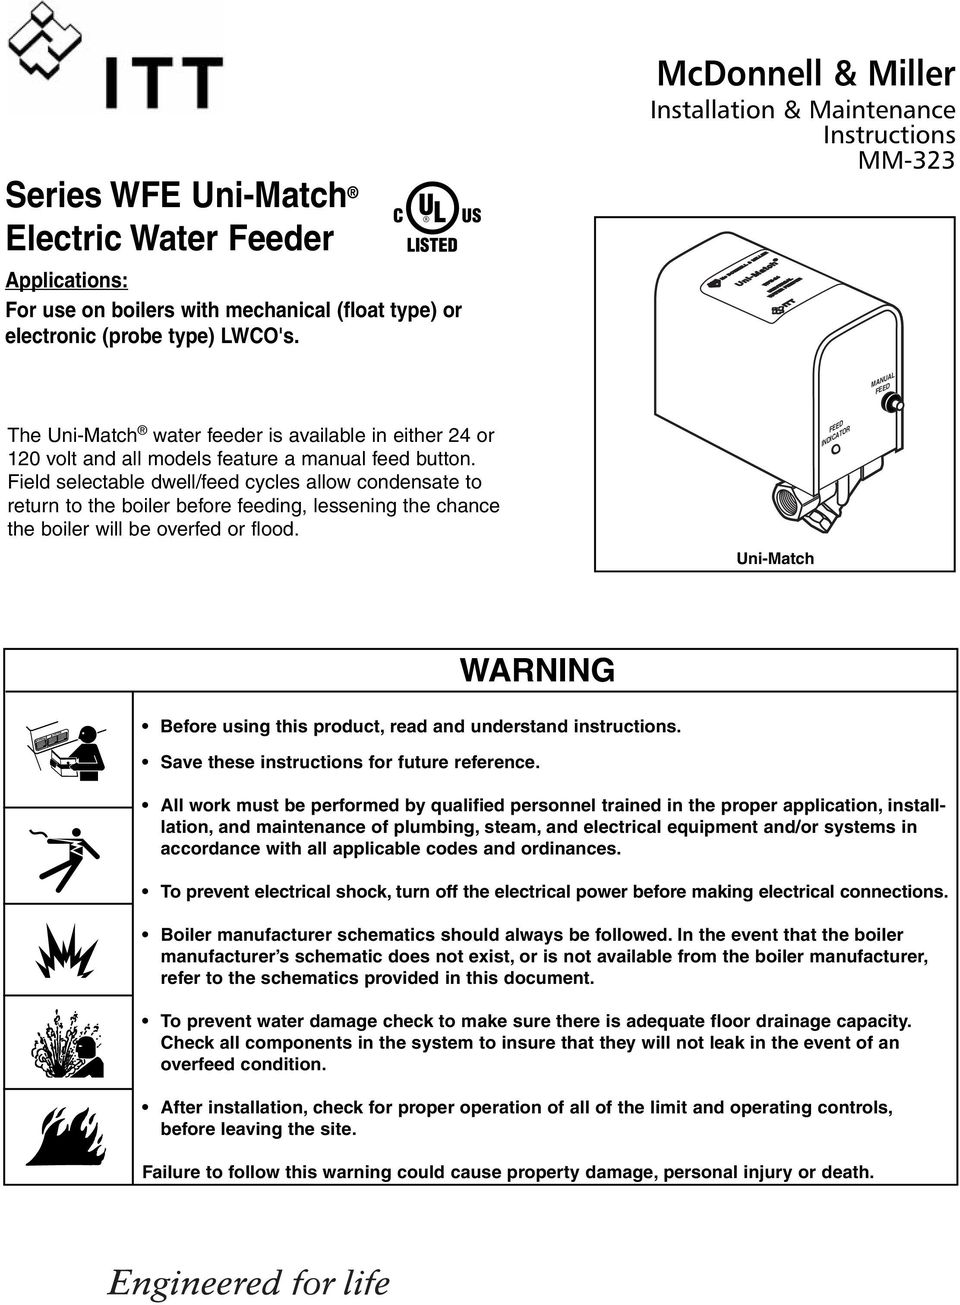 Warning Before Using This Product Read And Understand Instructions Mcdonnell Miller Wiring Diagrams Field Selectable Dwell Feed Cycles Allow Condensate To Return The Boiler Feeding